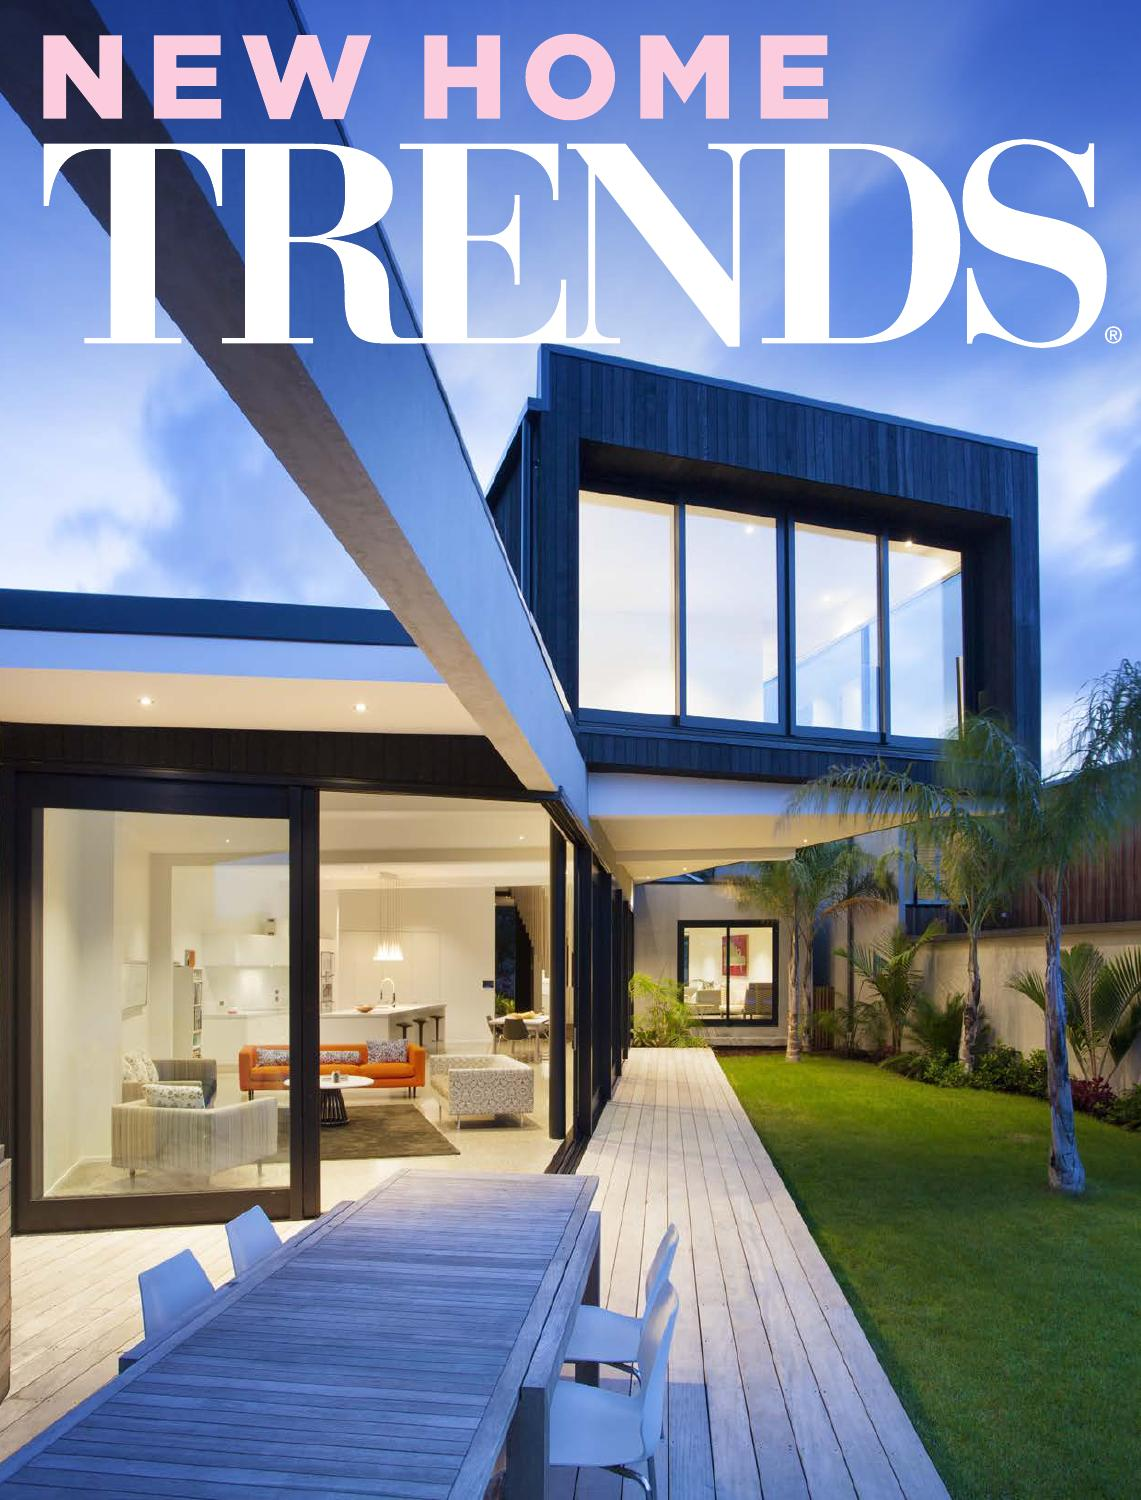 NEW HOME TRENDS New Zealand Vol 30/07 by trendsideas.com - issuu